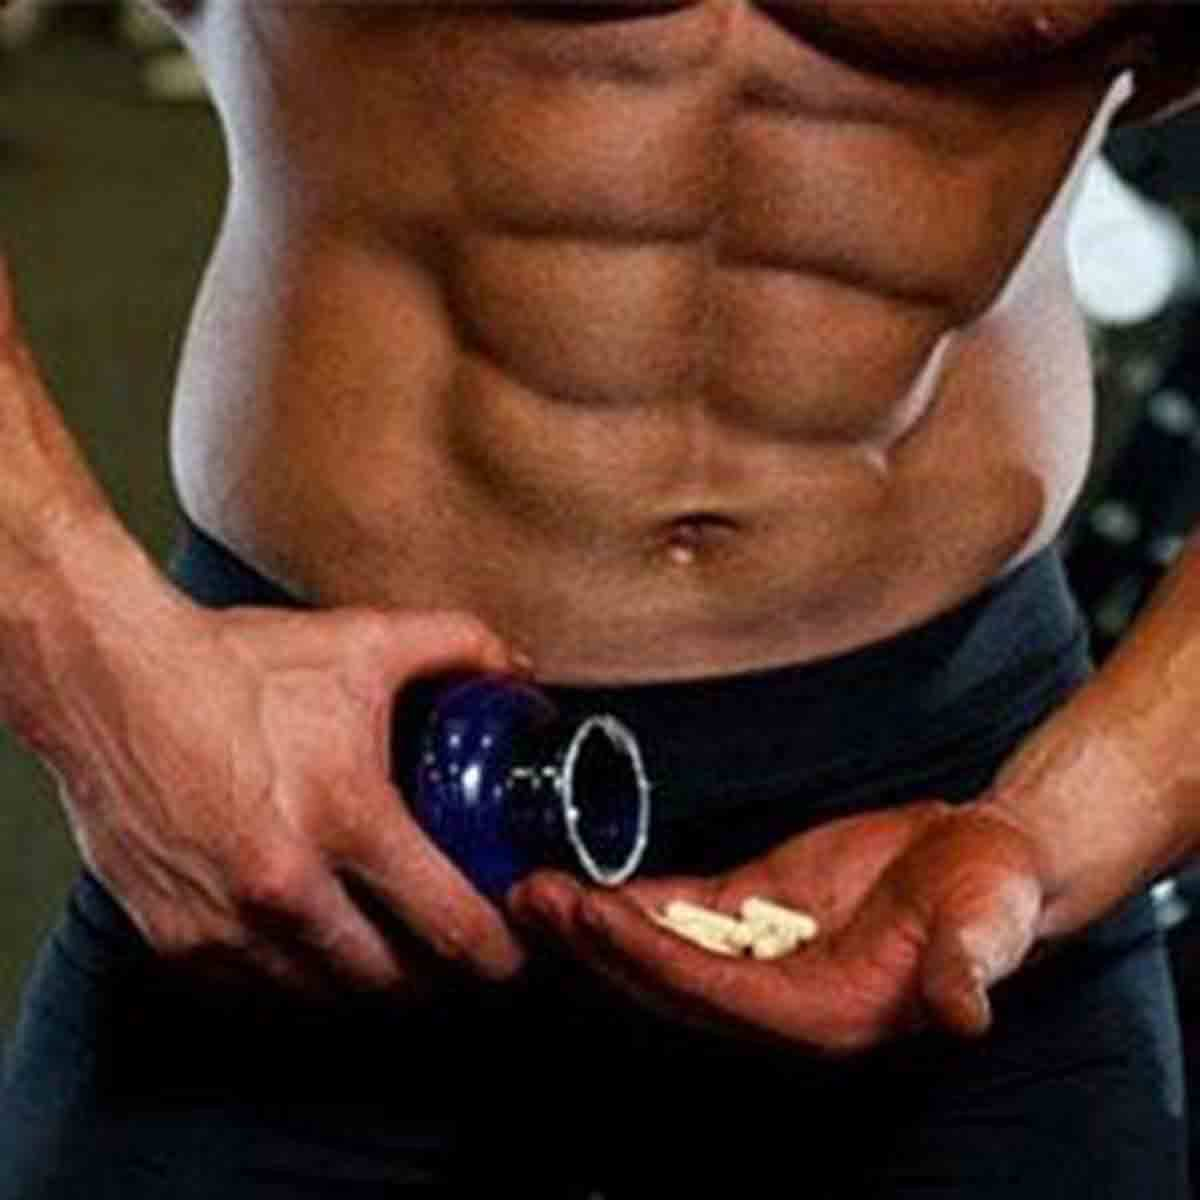 Testosterone Boosters: Do They Really Work?